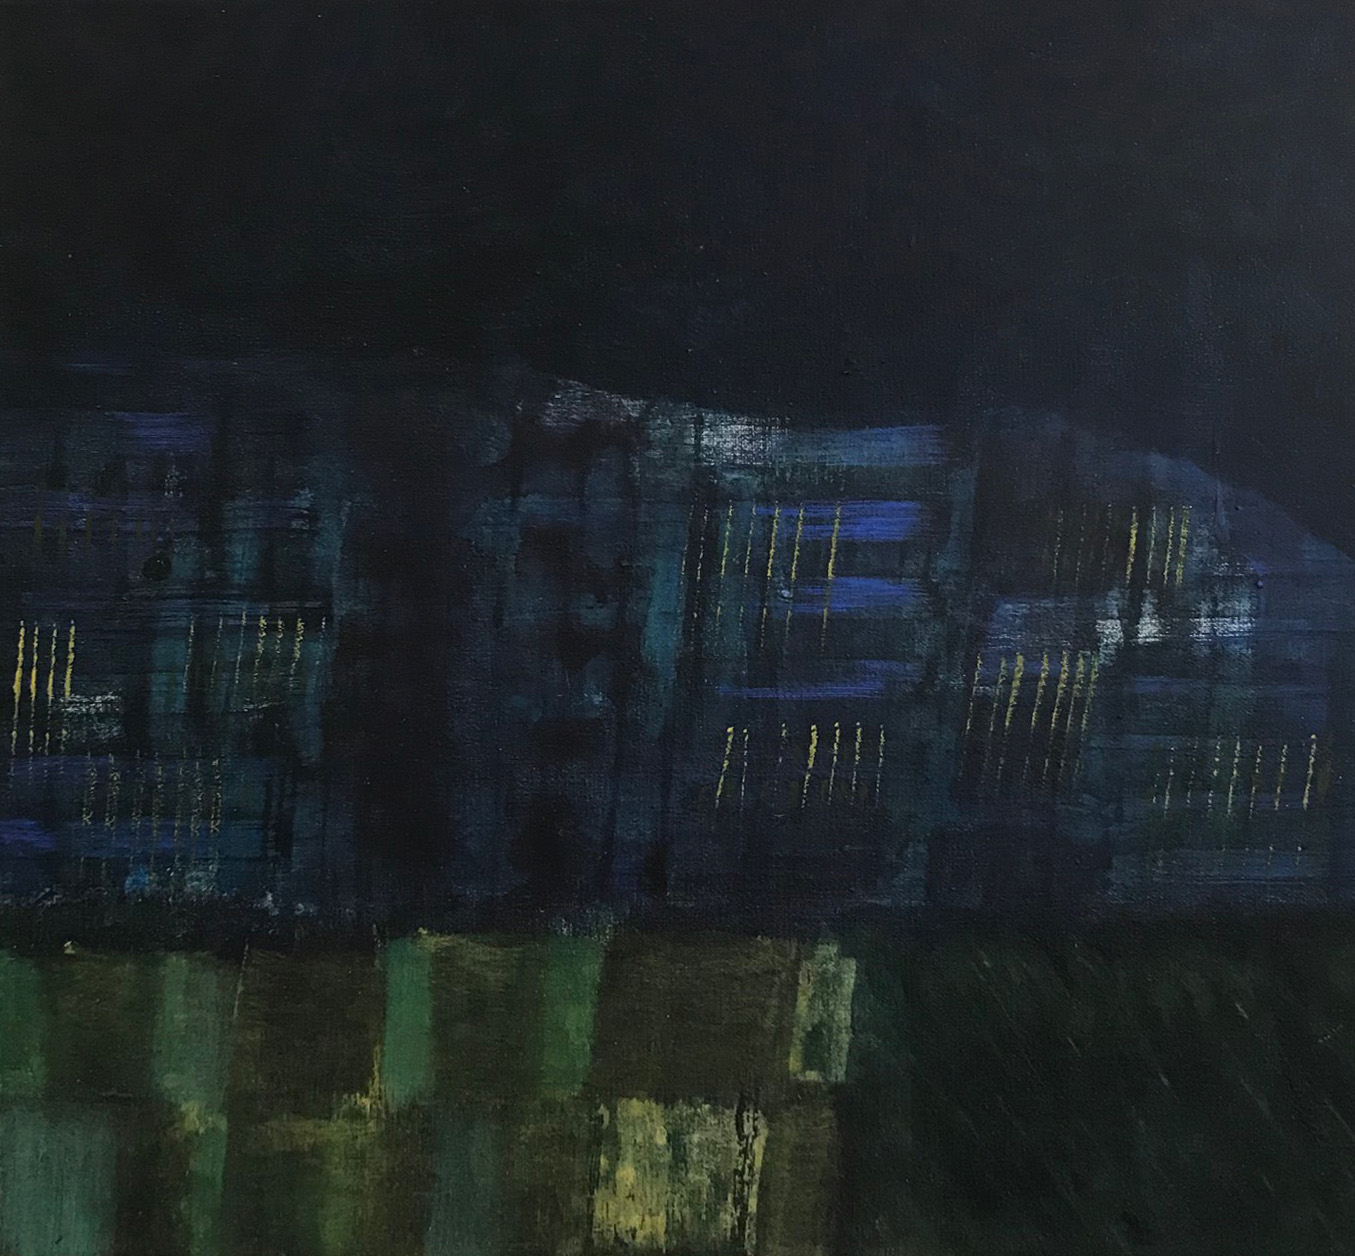 Artist: David Harkins  Title: Night (descending)  Size: 36 x 36 cm  Medium: Acrylic on canvas  Price: £695